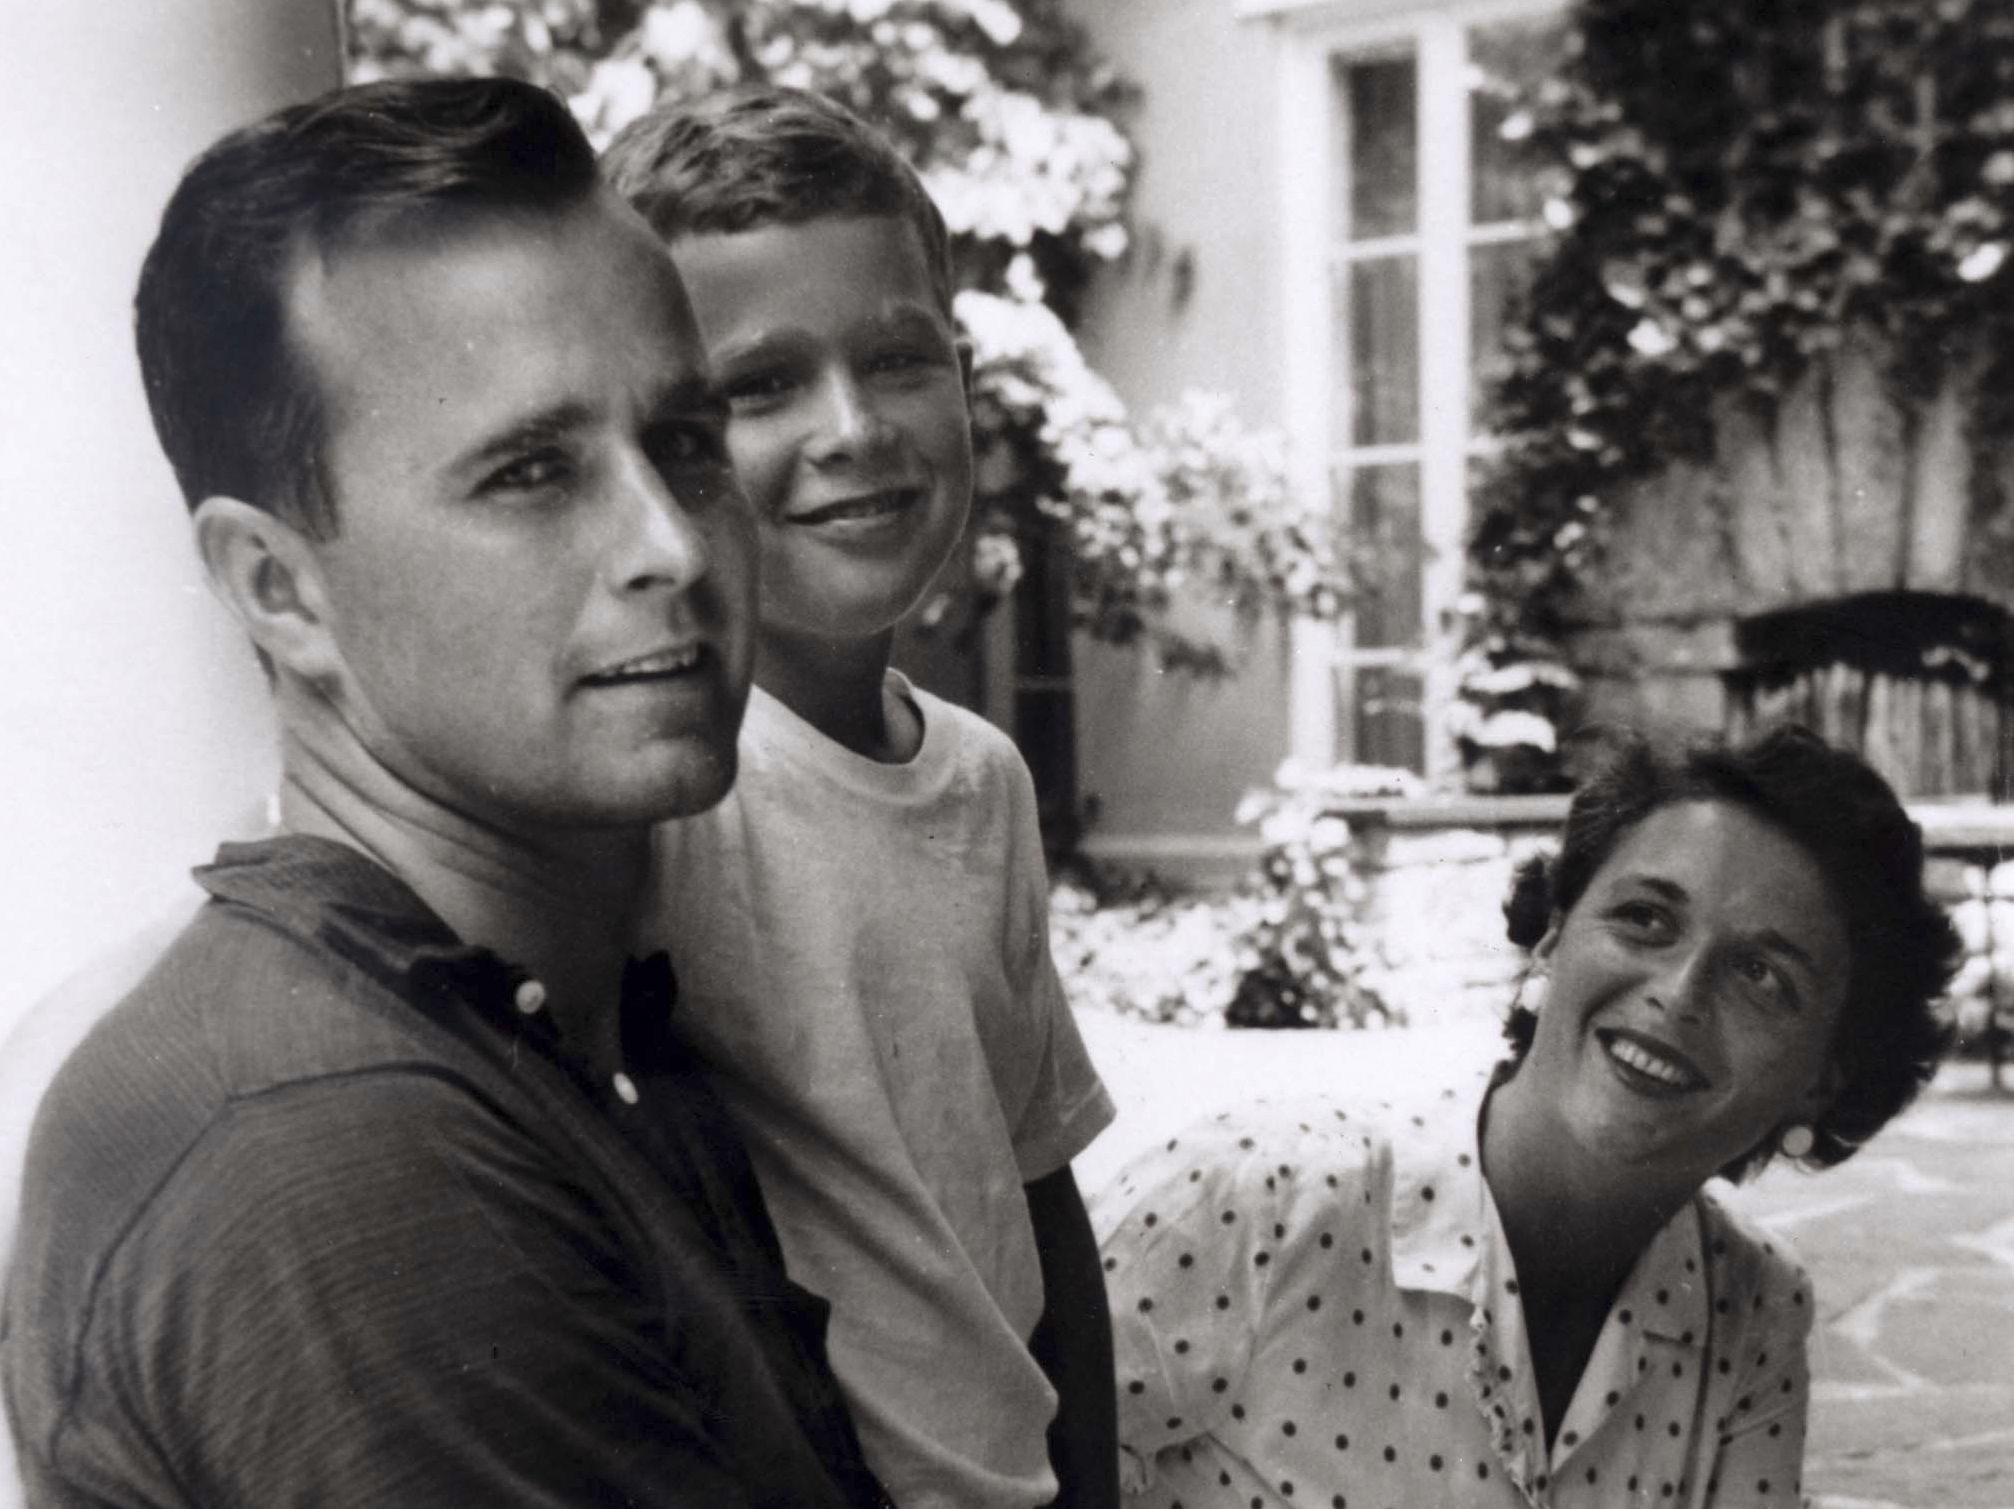 This undated handout photo shows Bush with his son George W. Bush and wife Barbara.